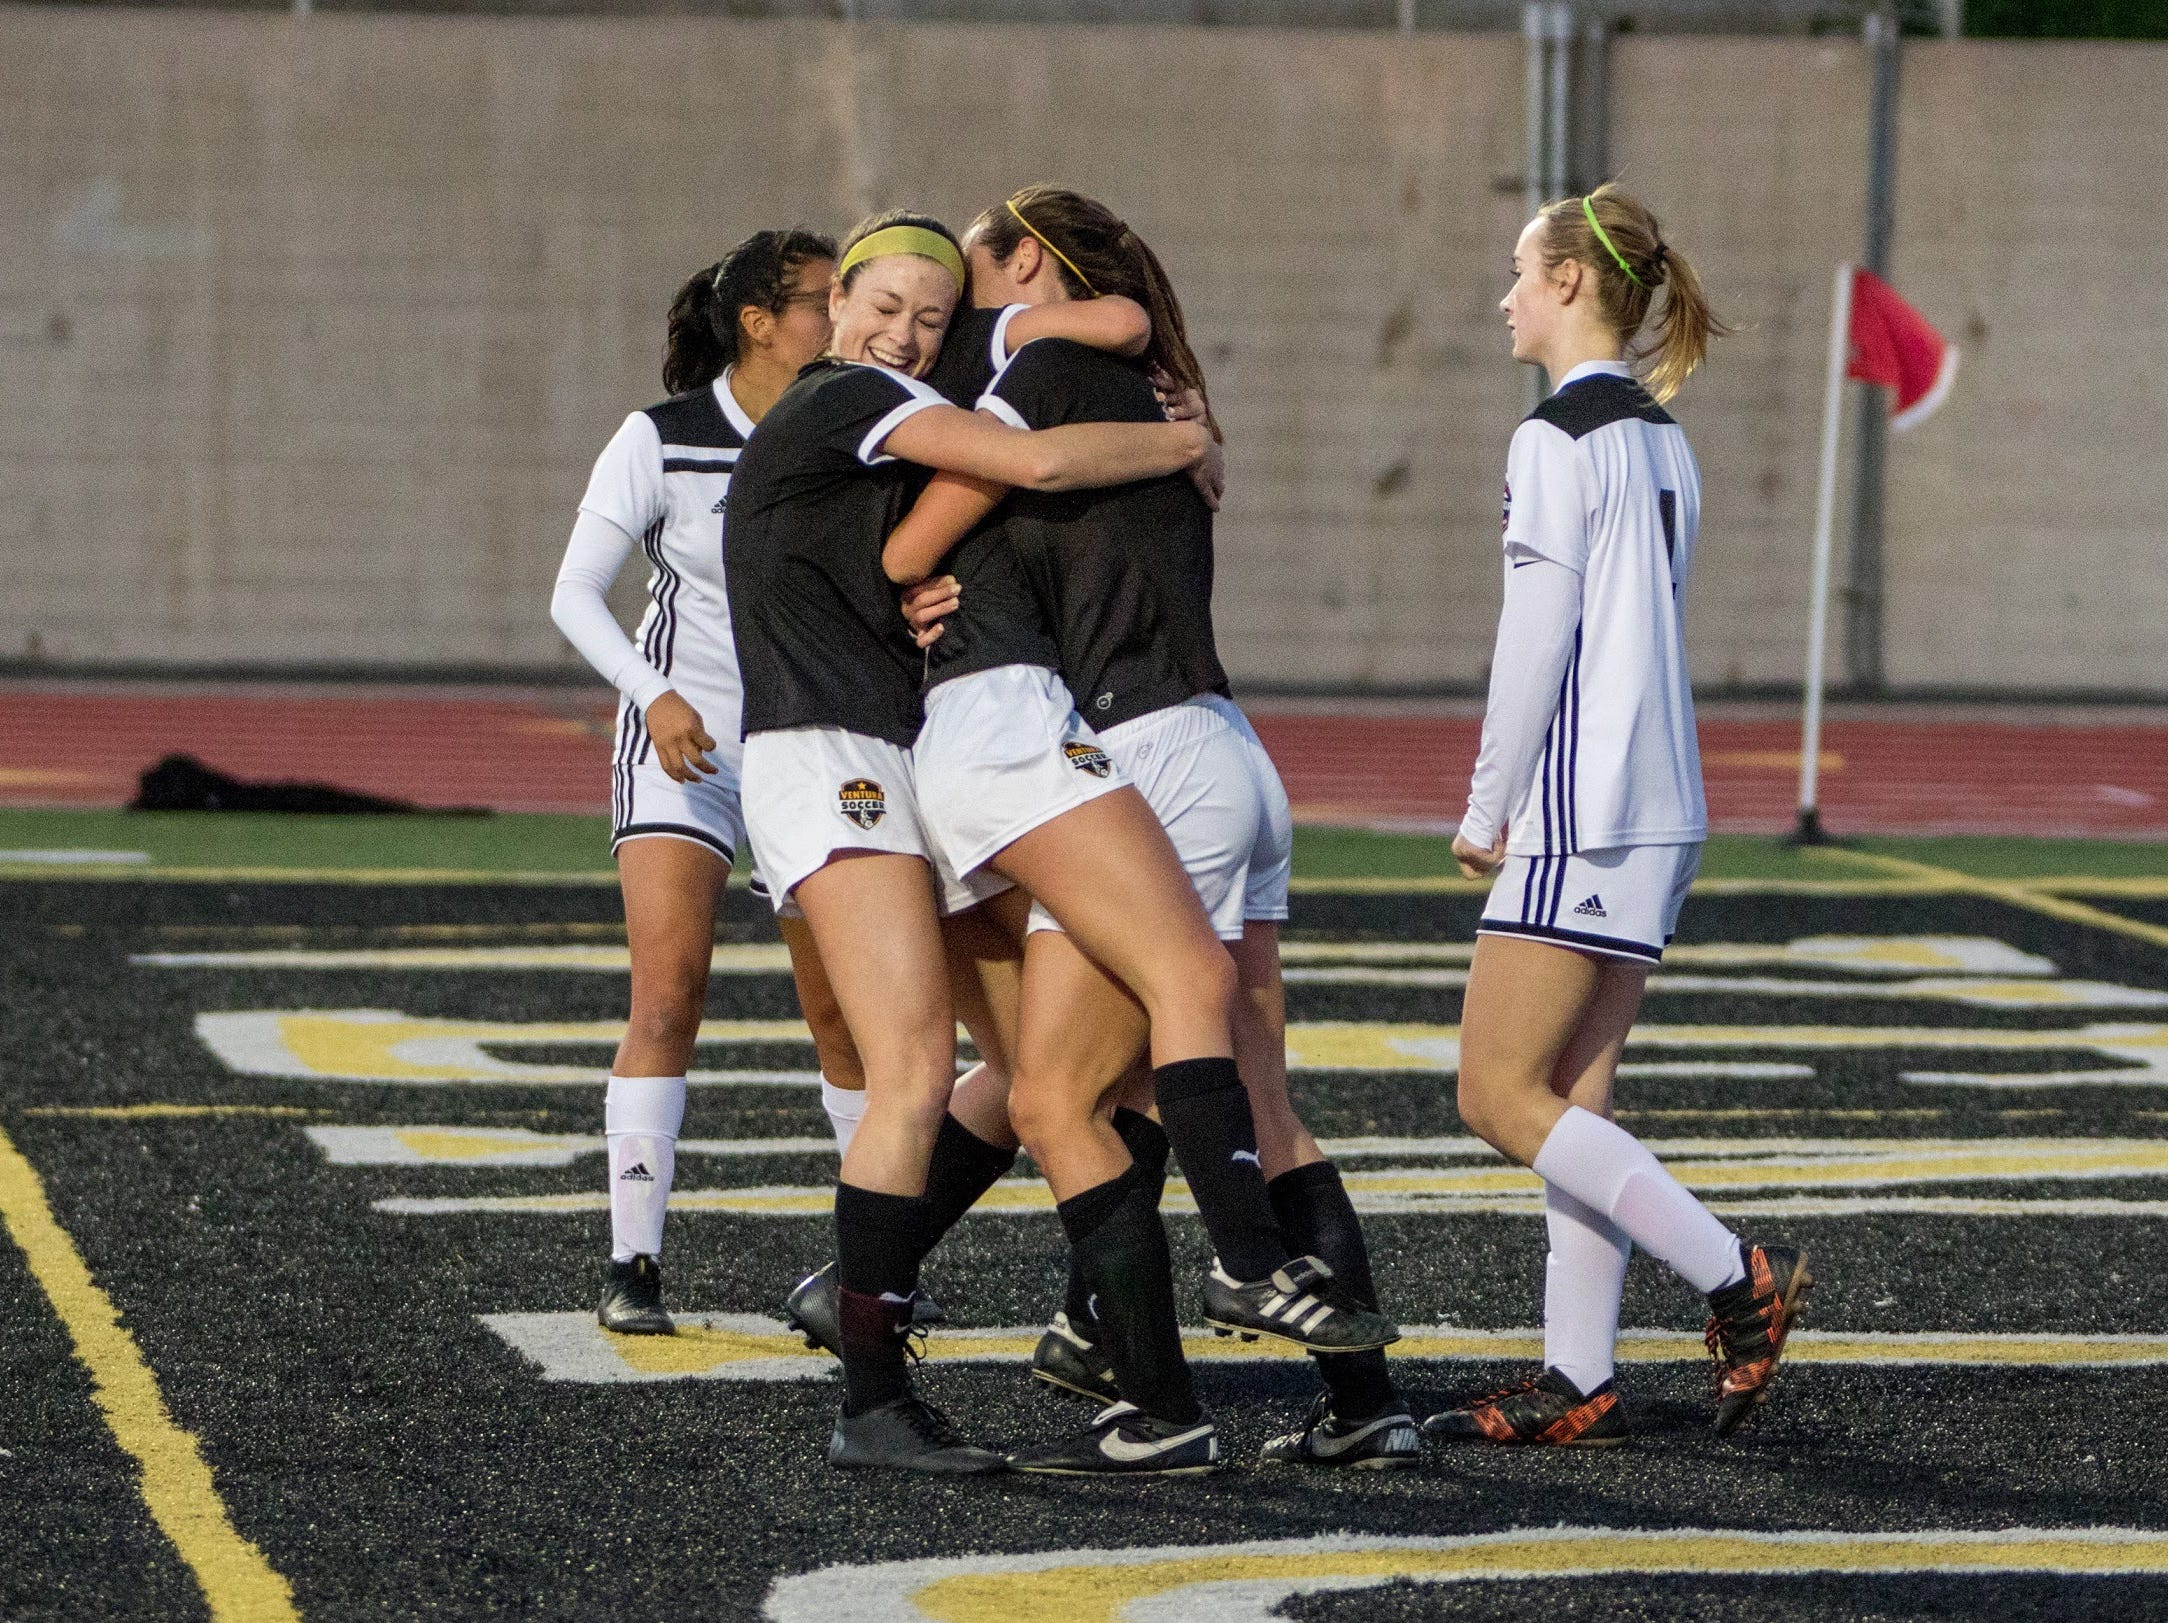 Cassidy Hubert, left, and Peyton Erickson embrace Alex Kwasny after the senior midfielder scored to tie the game in the first half of Ventura High's win over visiting Glendora on Friday night in the second round of the CIF-Southern Section Division 2 girls soccer playoffs at Larrabee Stadium. Ventura won, 4-1.